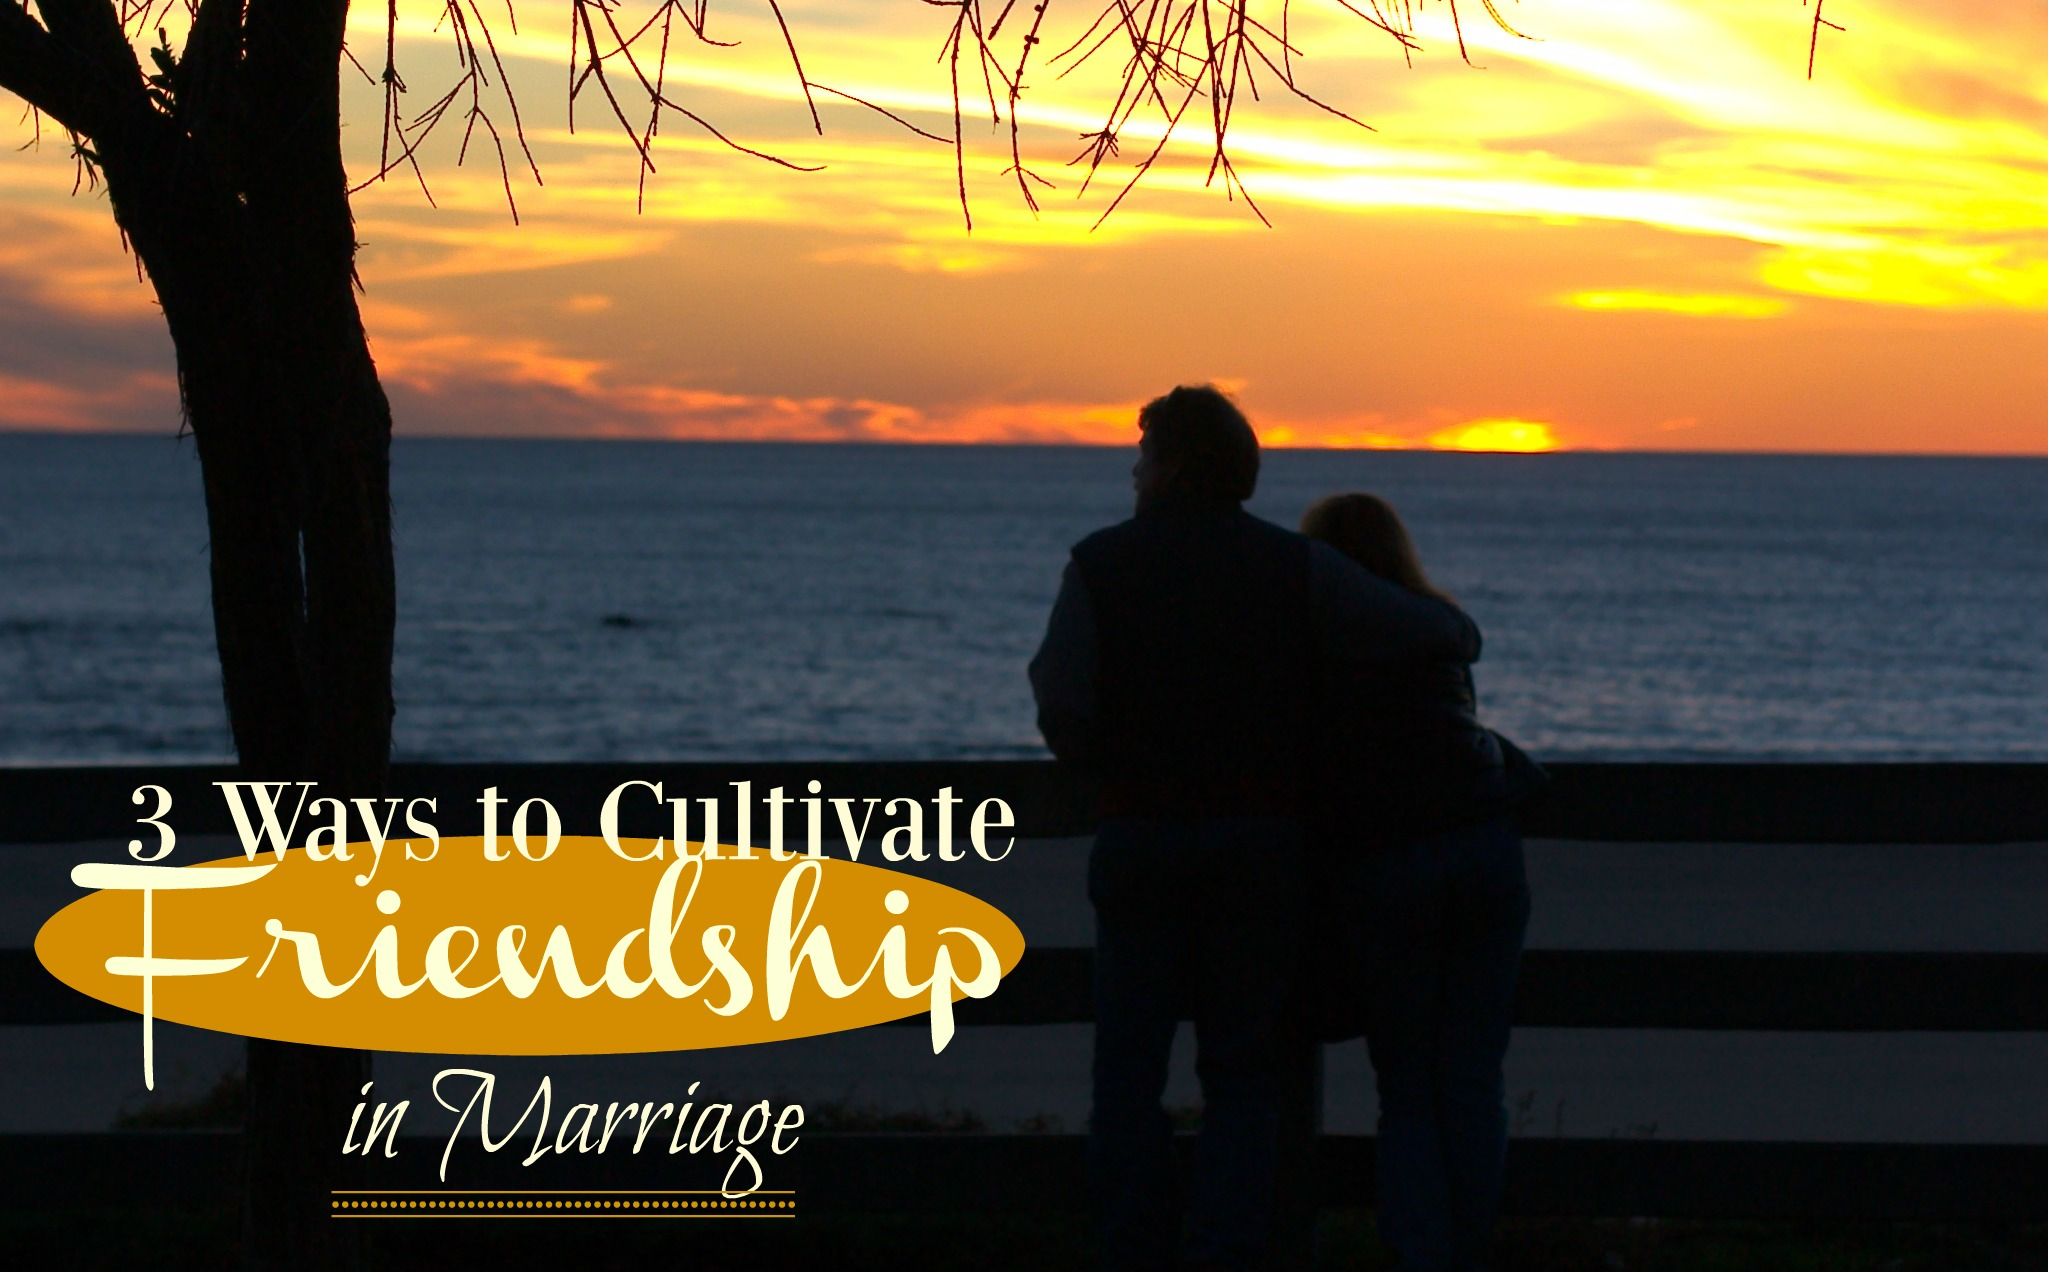 3-ways-to-cultivate-friendship-in-marriage